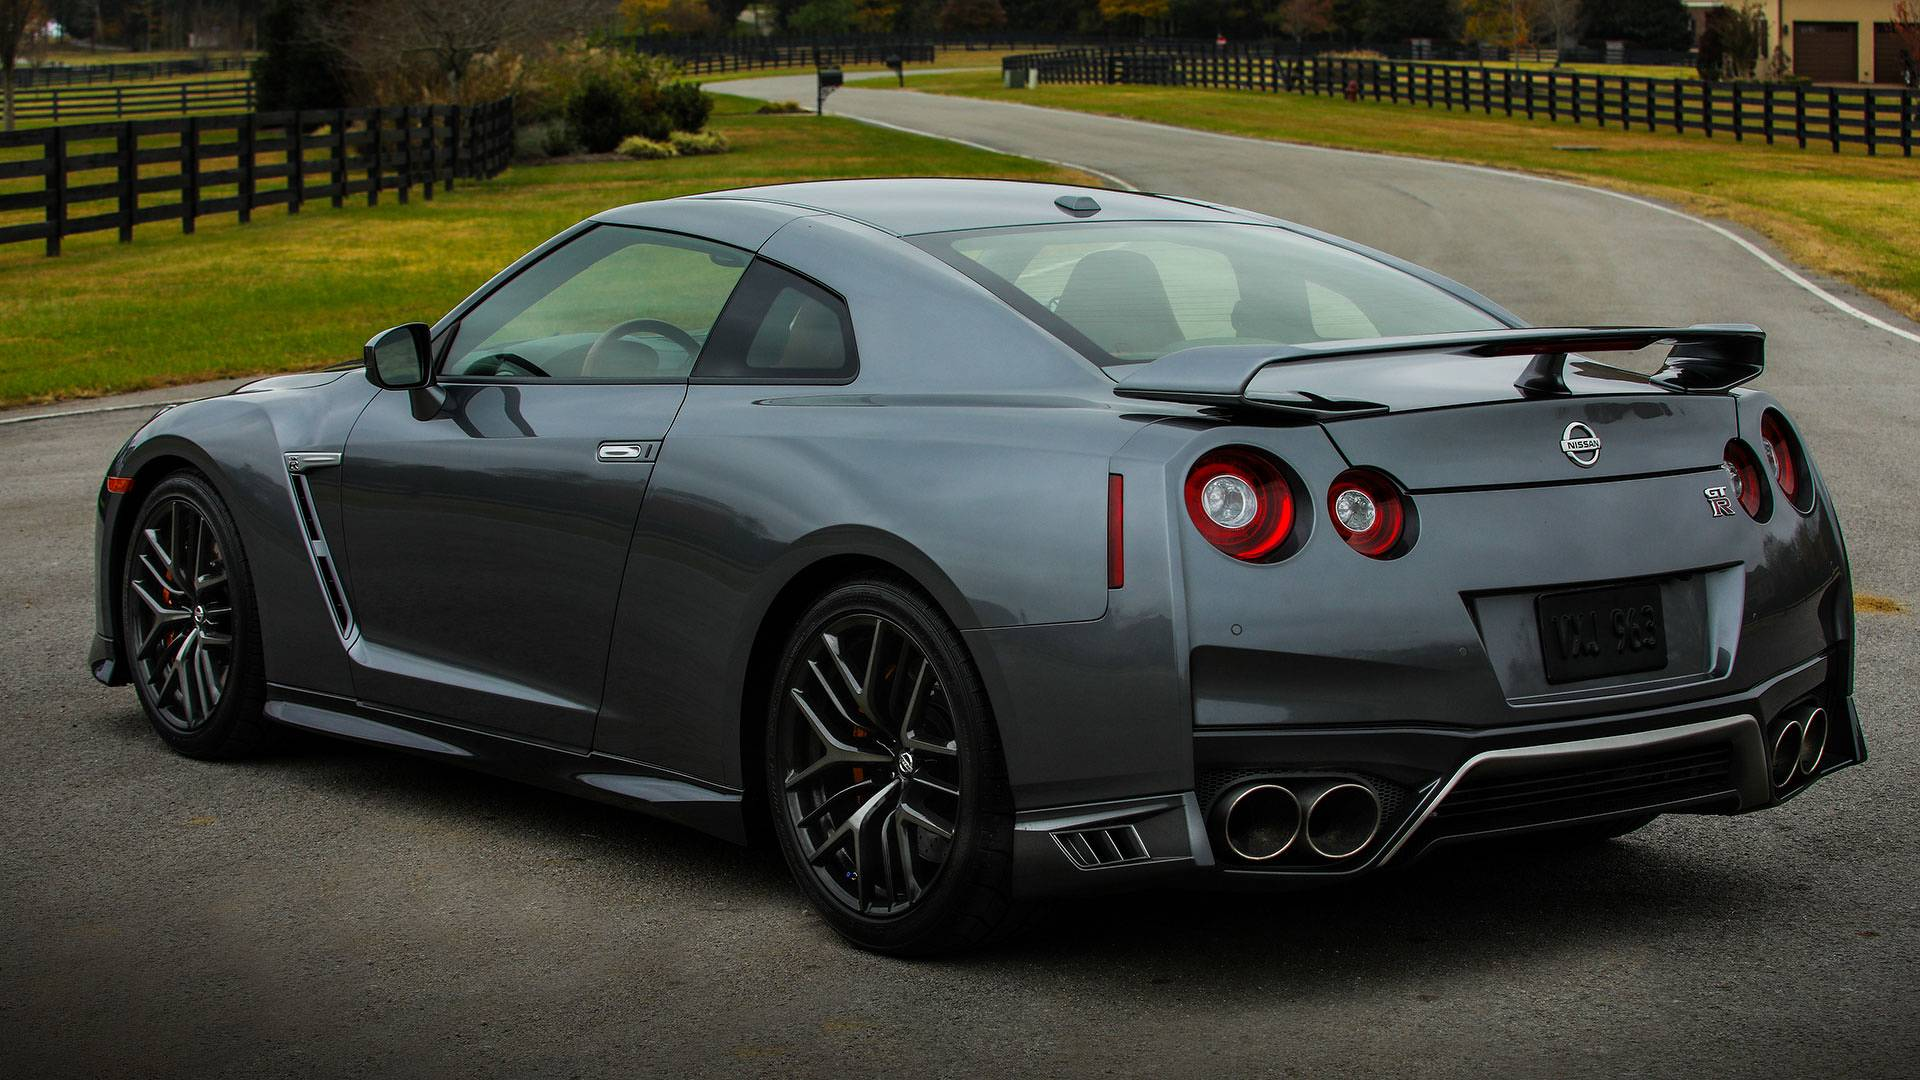 1,850-HP Nissan GT-R With Huge Wing Gets Pulled Over By Police